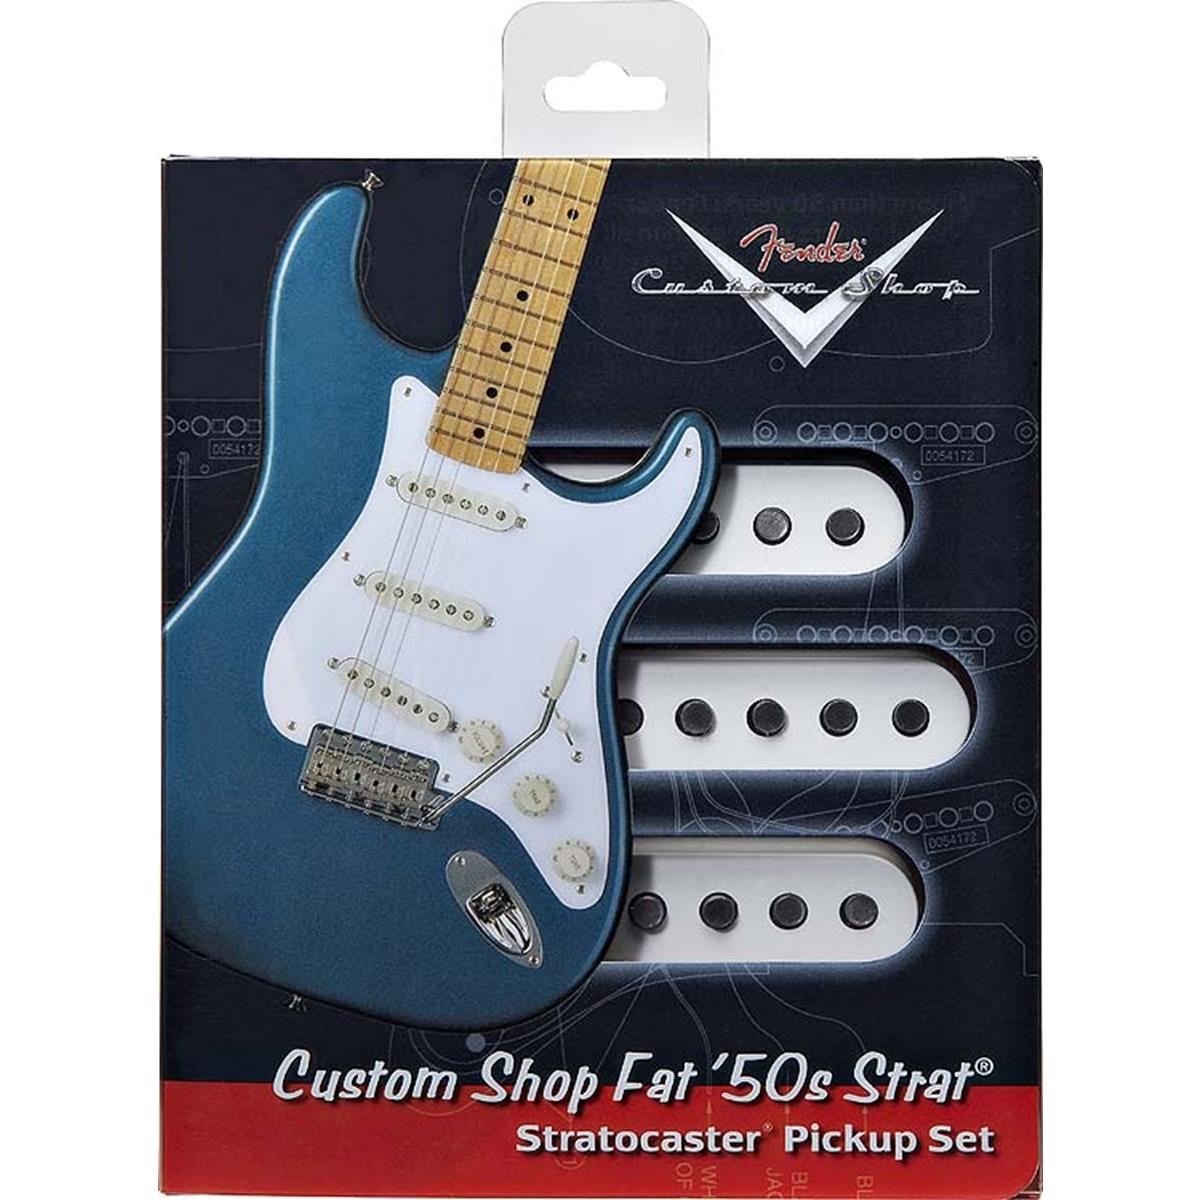 FENDER FAT 50 STRATOCASTER PICKUP SET  STRATO - 10291000